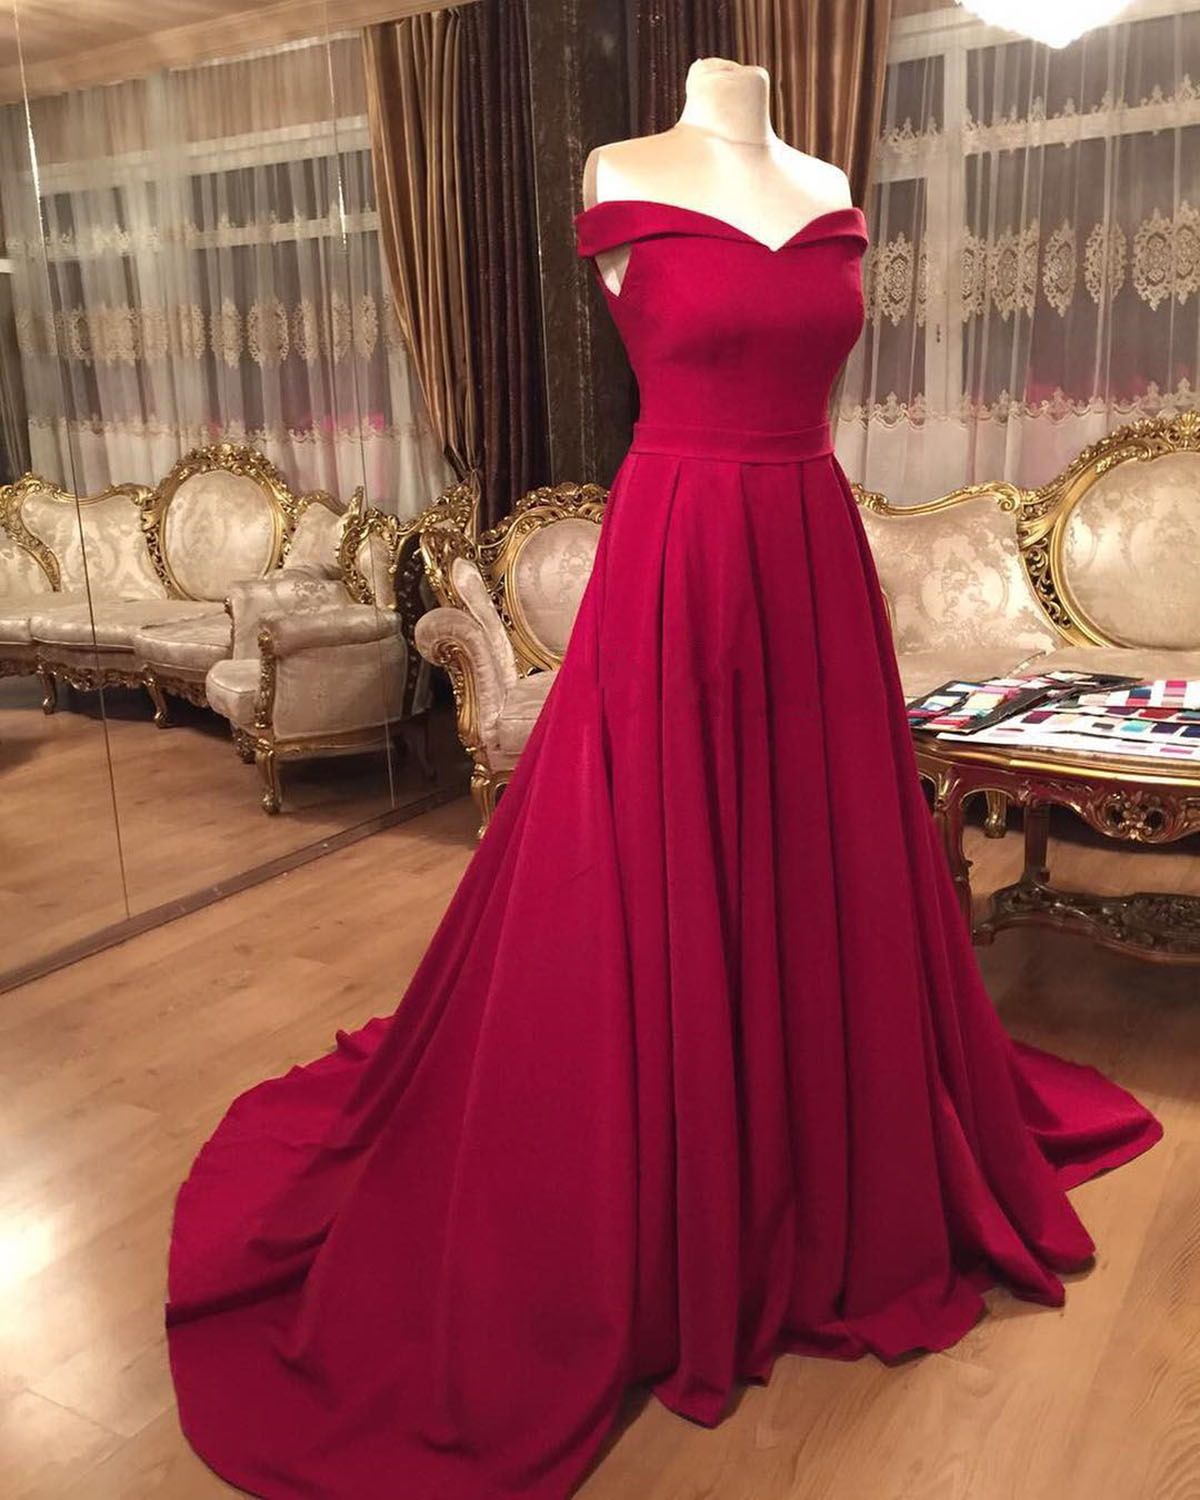 b5746f11d54 Strapless burgundy off shoulder long train evening dress